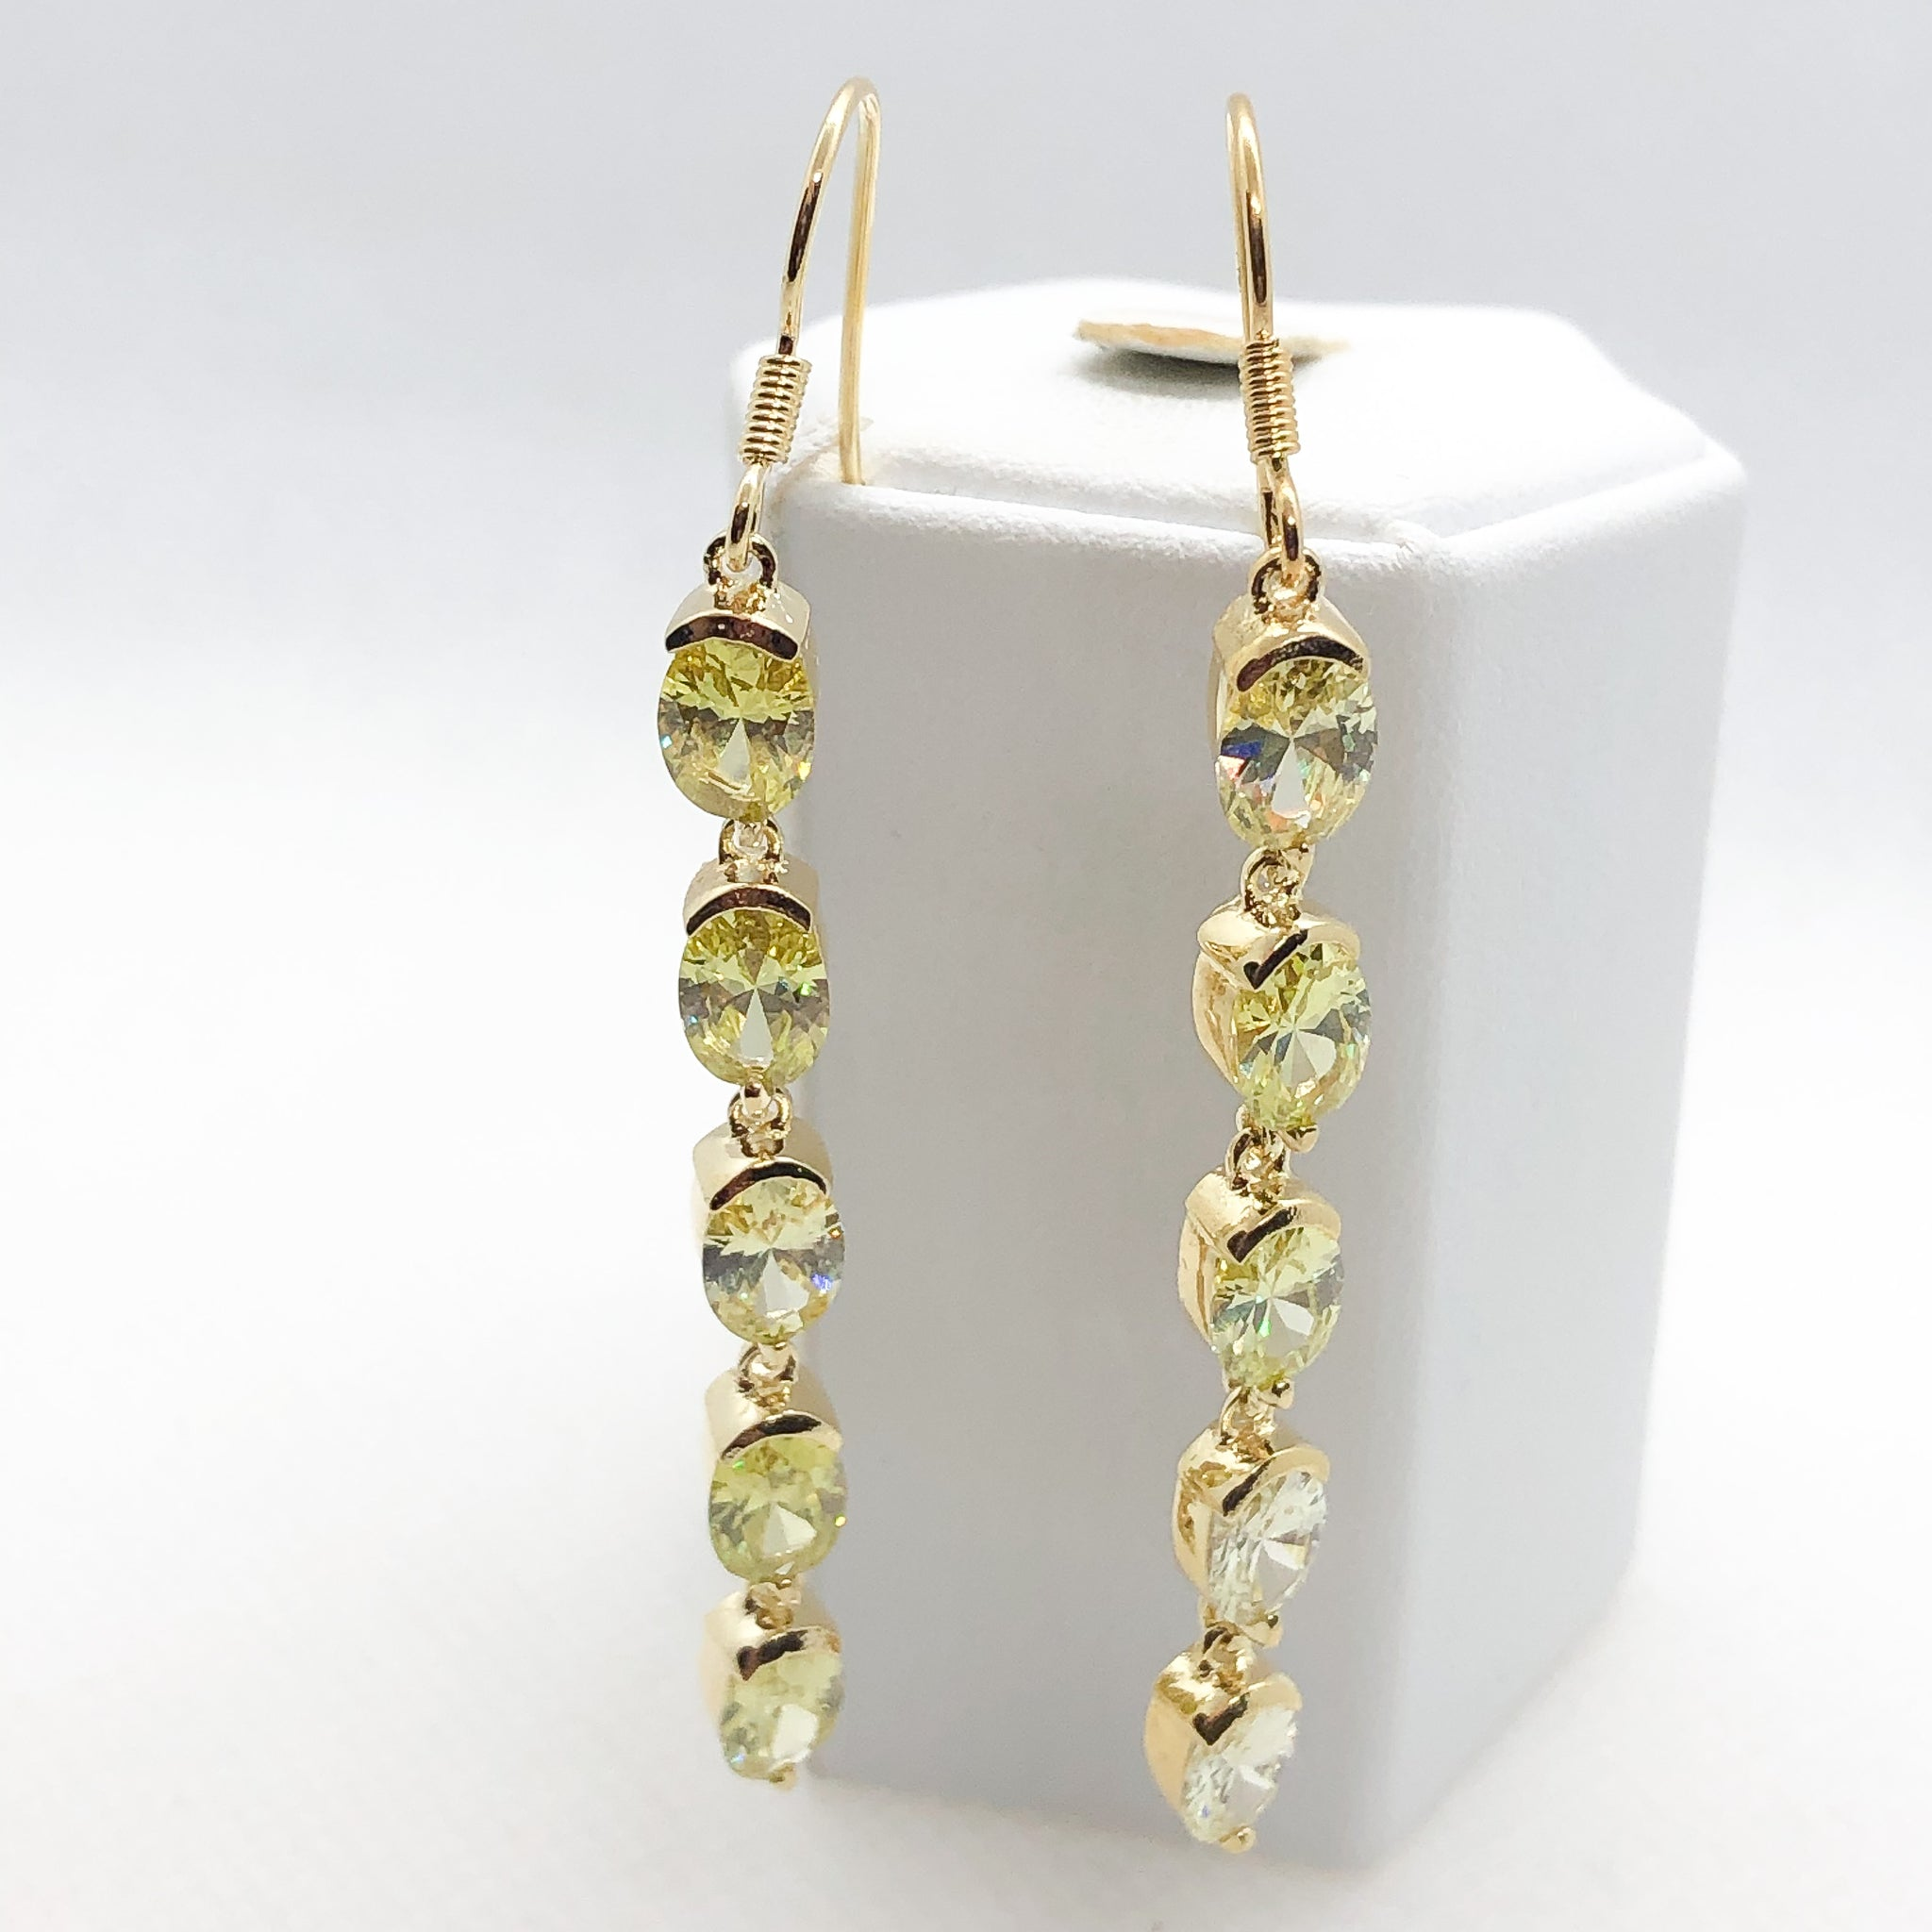 ID: E1124 Women Jewelry 18K Yellow Gold GF Green Crystal CZ Earrings Fashion Lady Drop Dangle